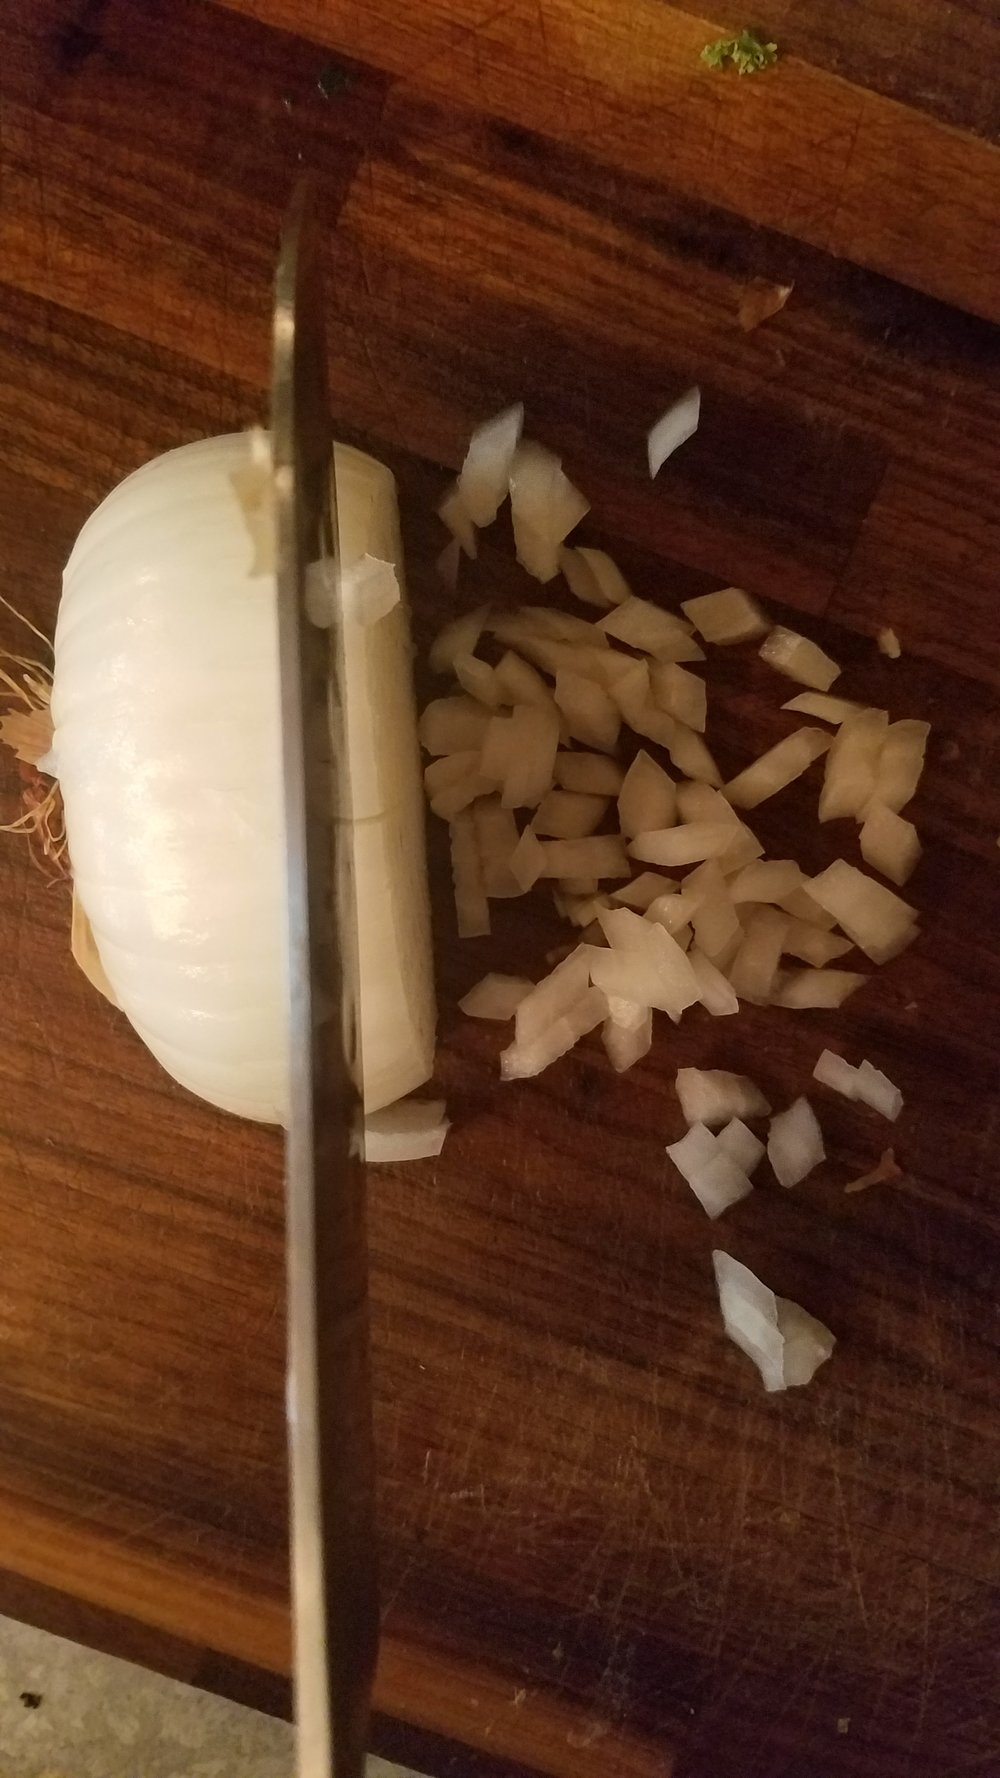 Dicing an Onion